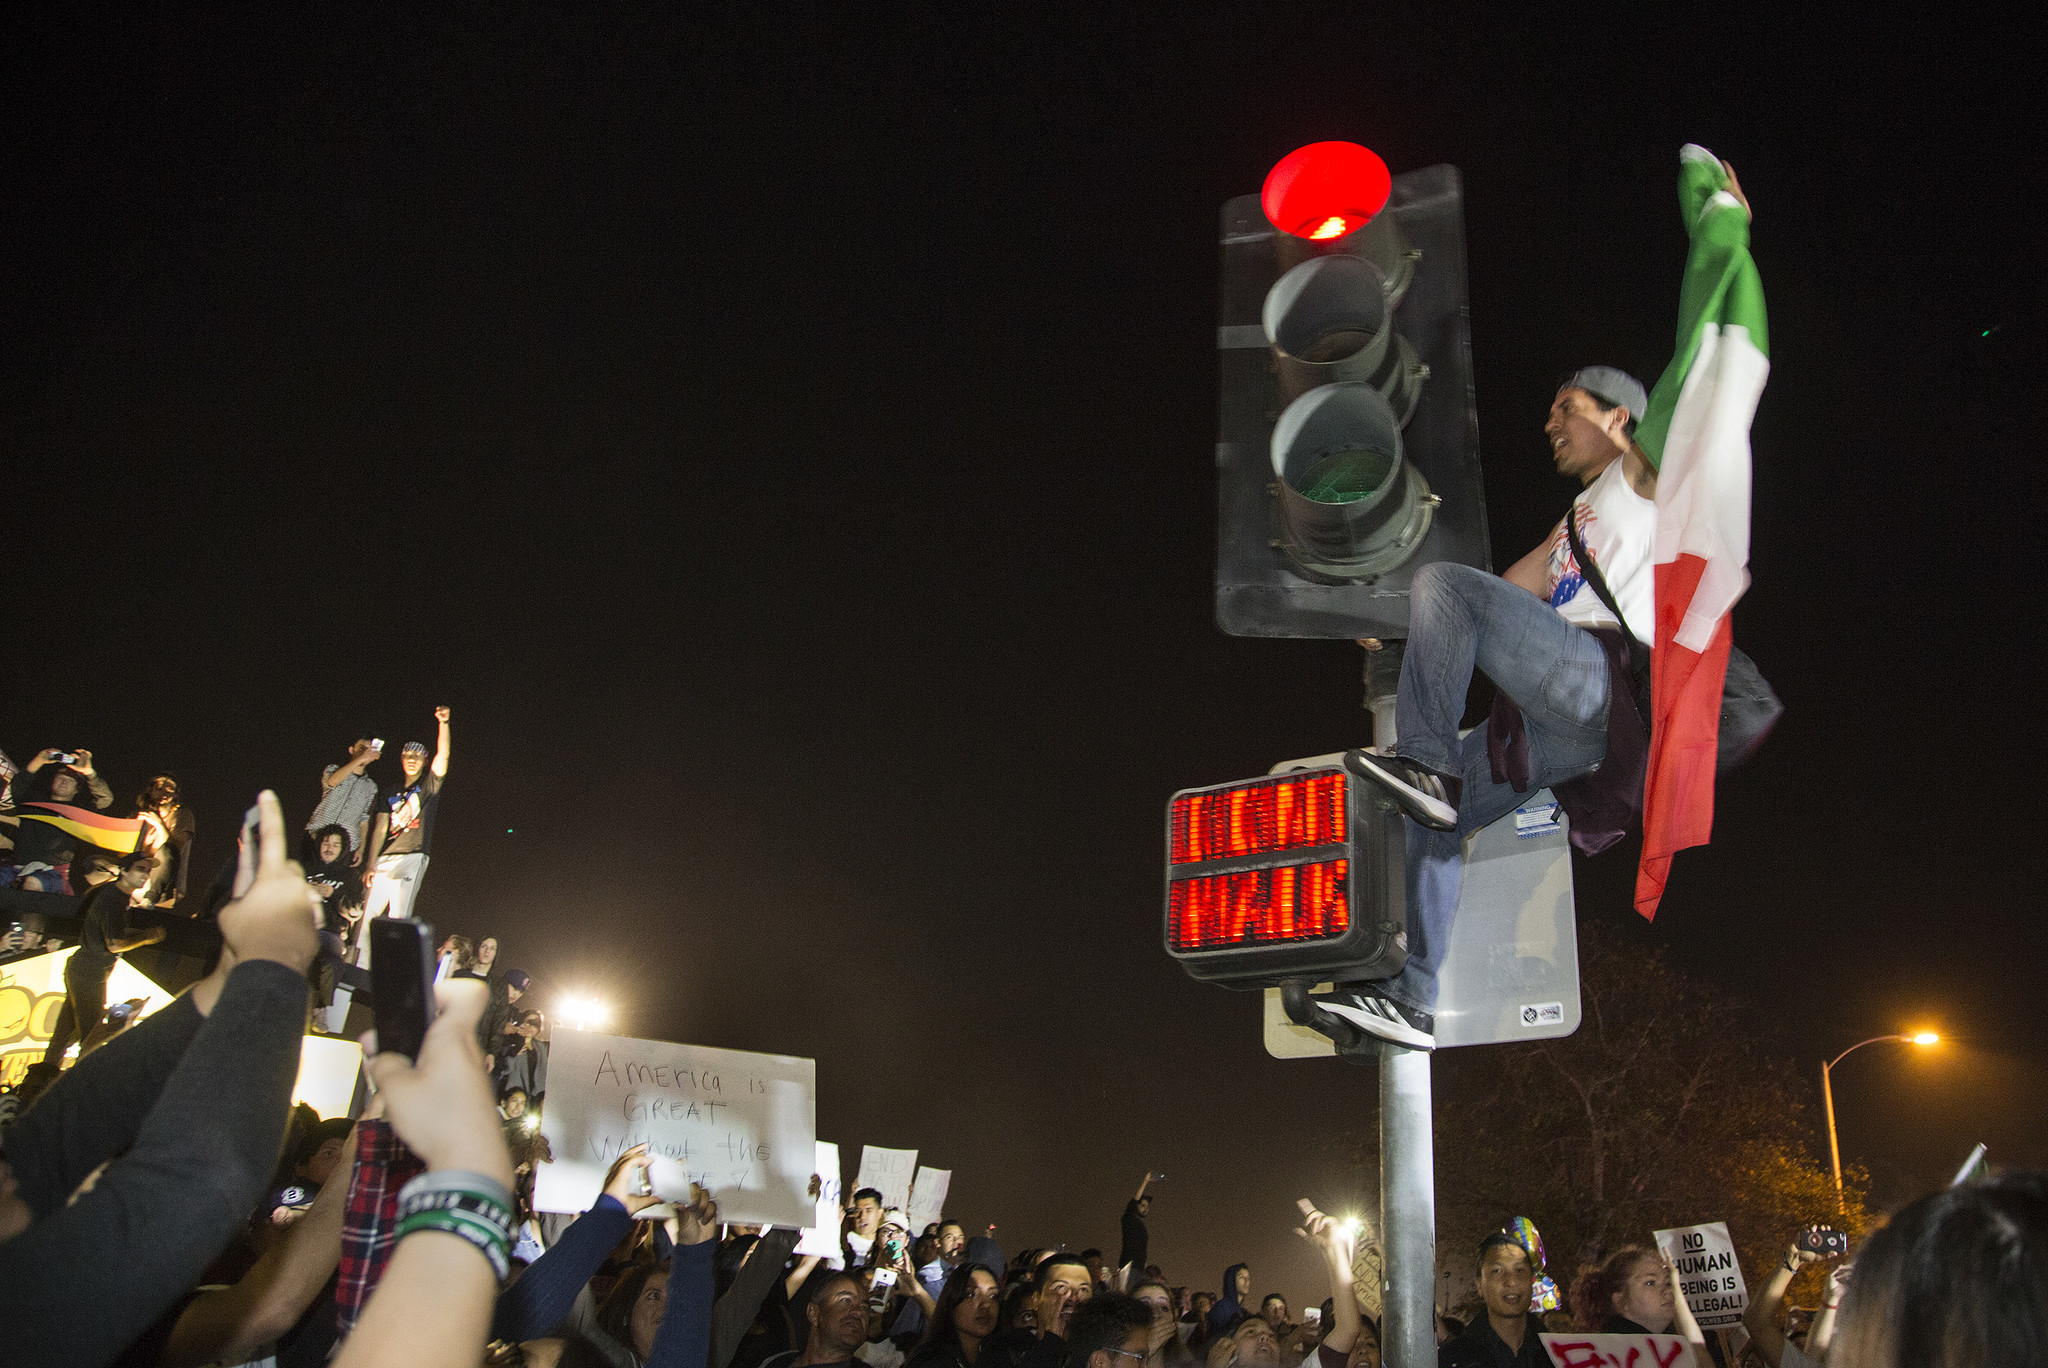 trump protesters mexican flag wavers could bring unintended